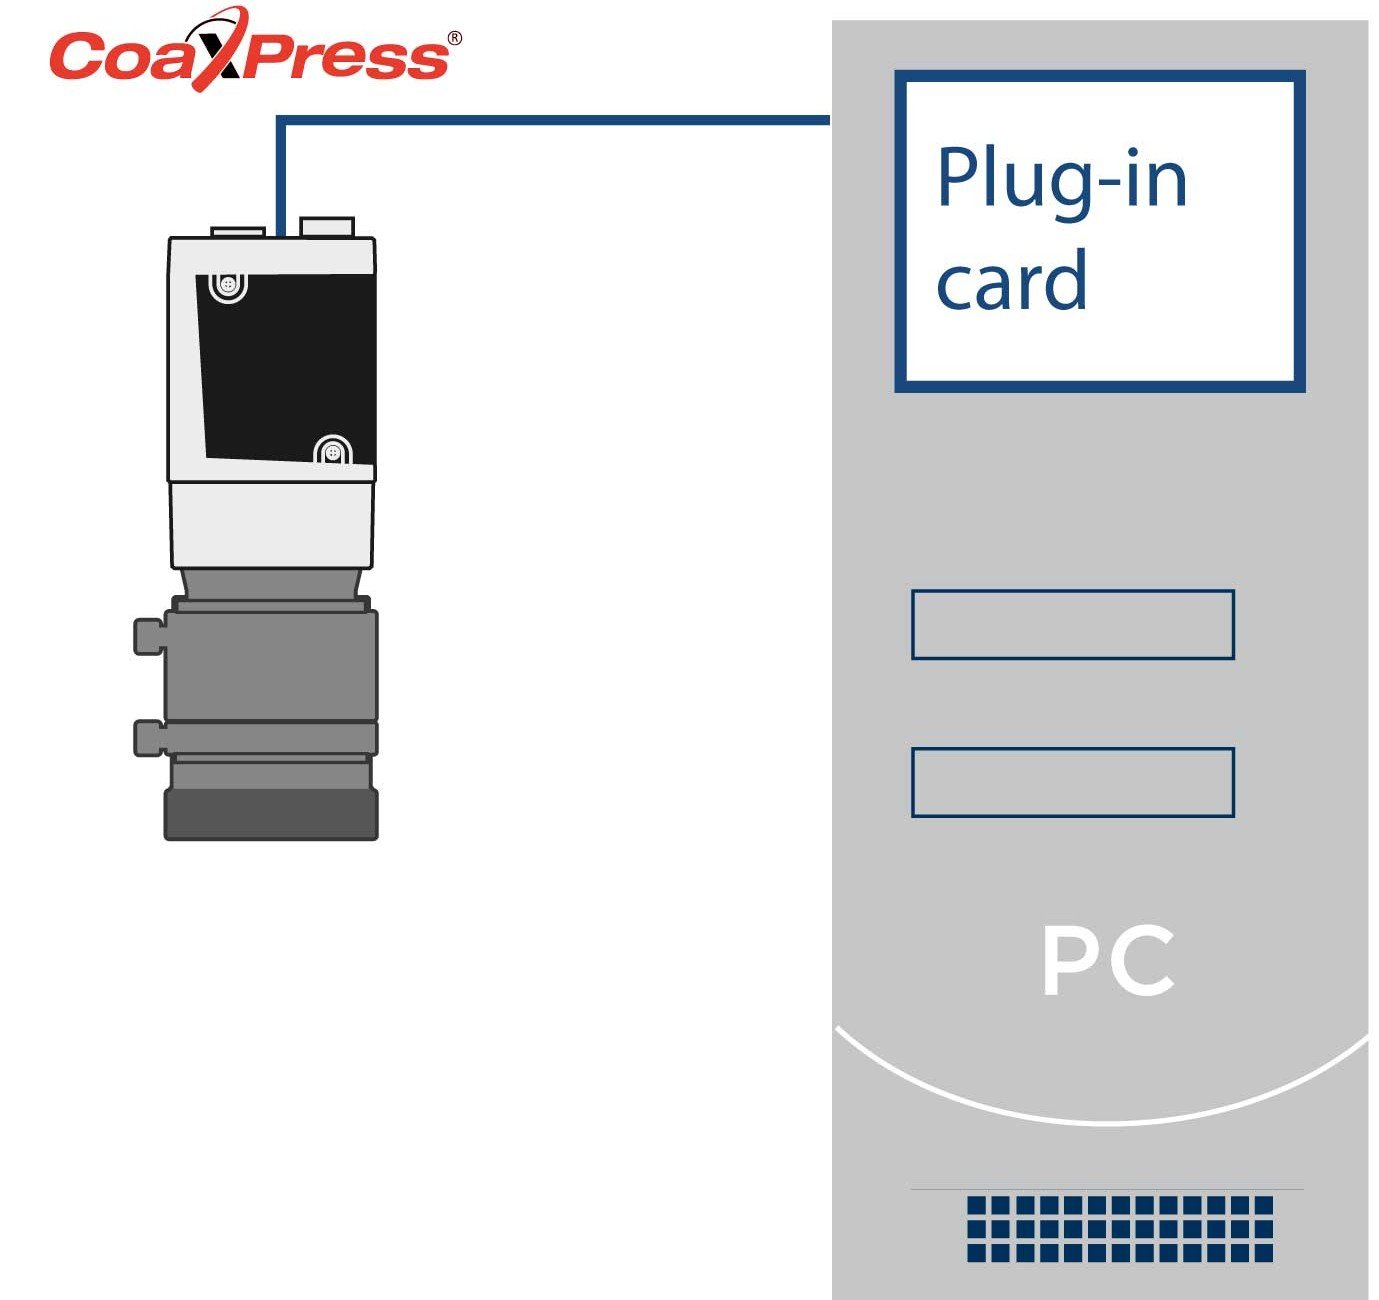 For the CoaXPress standard, the data transmission into the computer always requires the appropriate plug-in card.